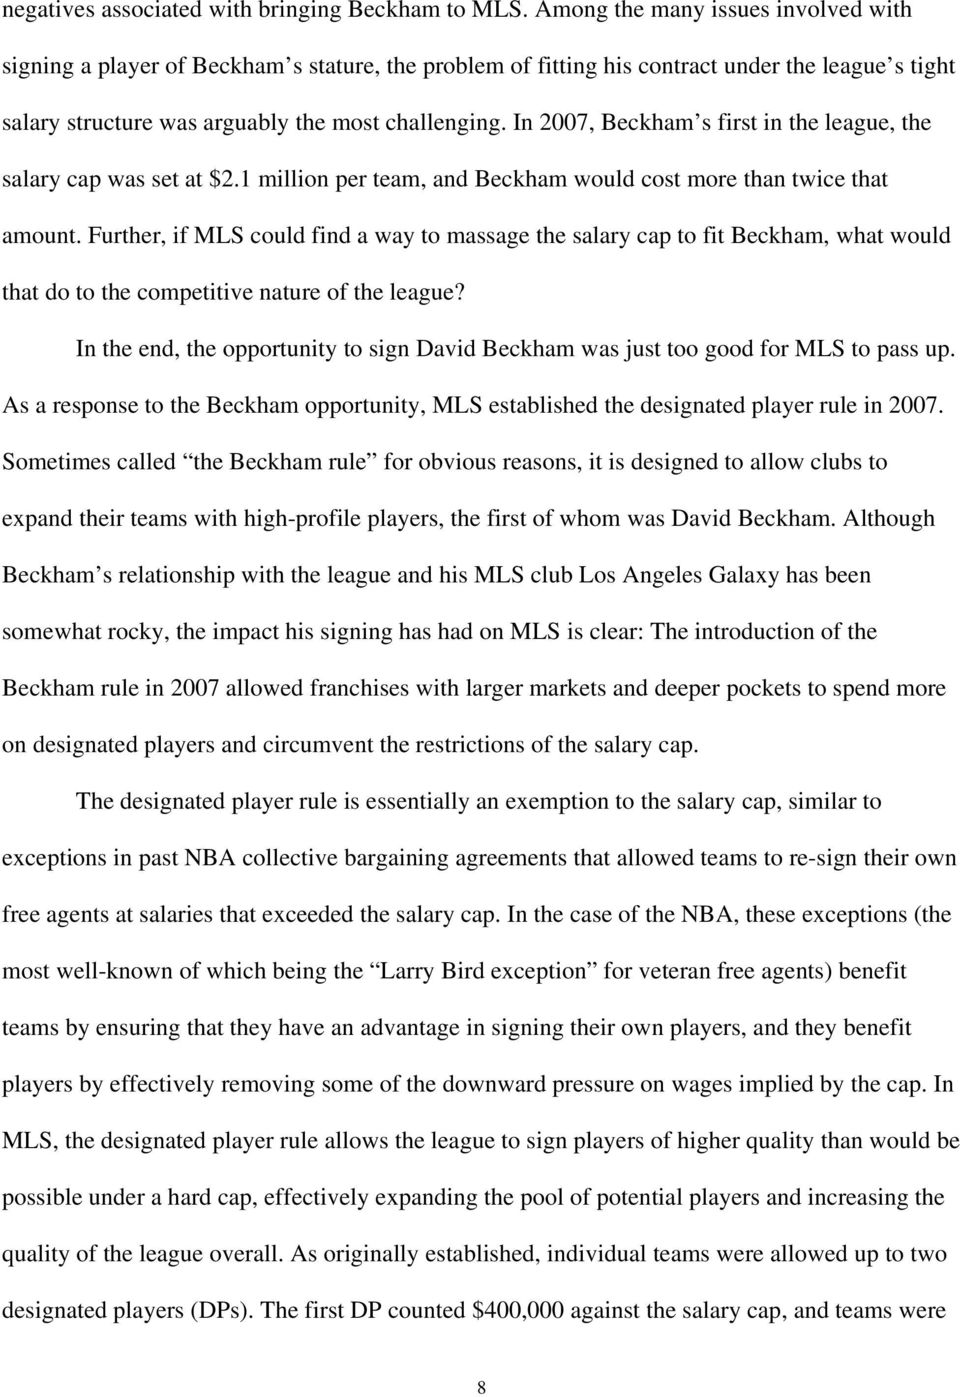 In 2007, Beckham s first in the league, the salary cap was set at $2.1 million per team, and Beckham would cost more than twice that amount.